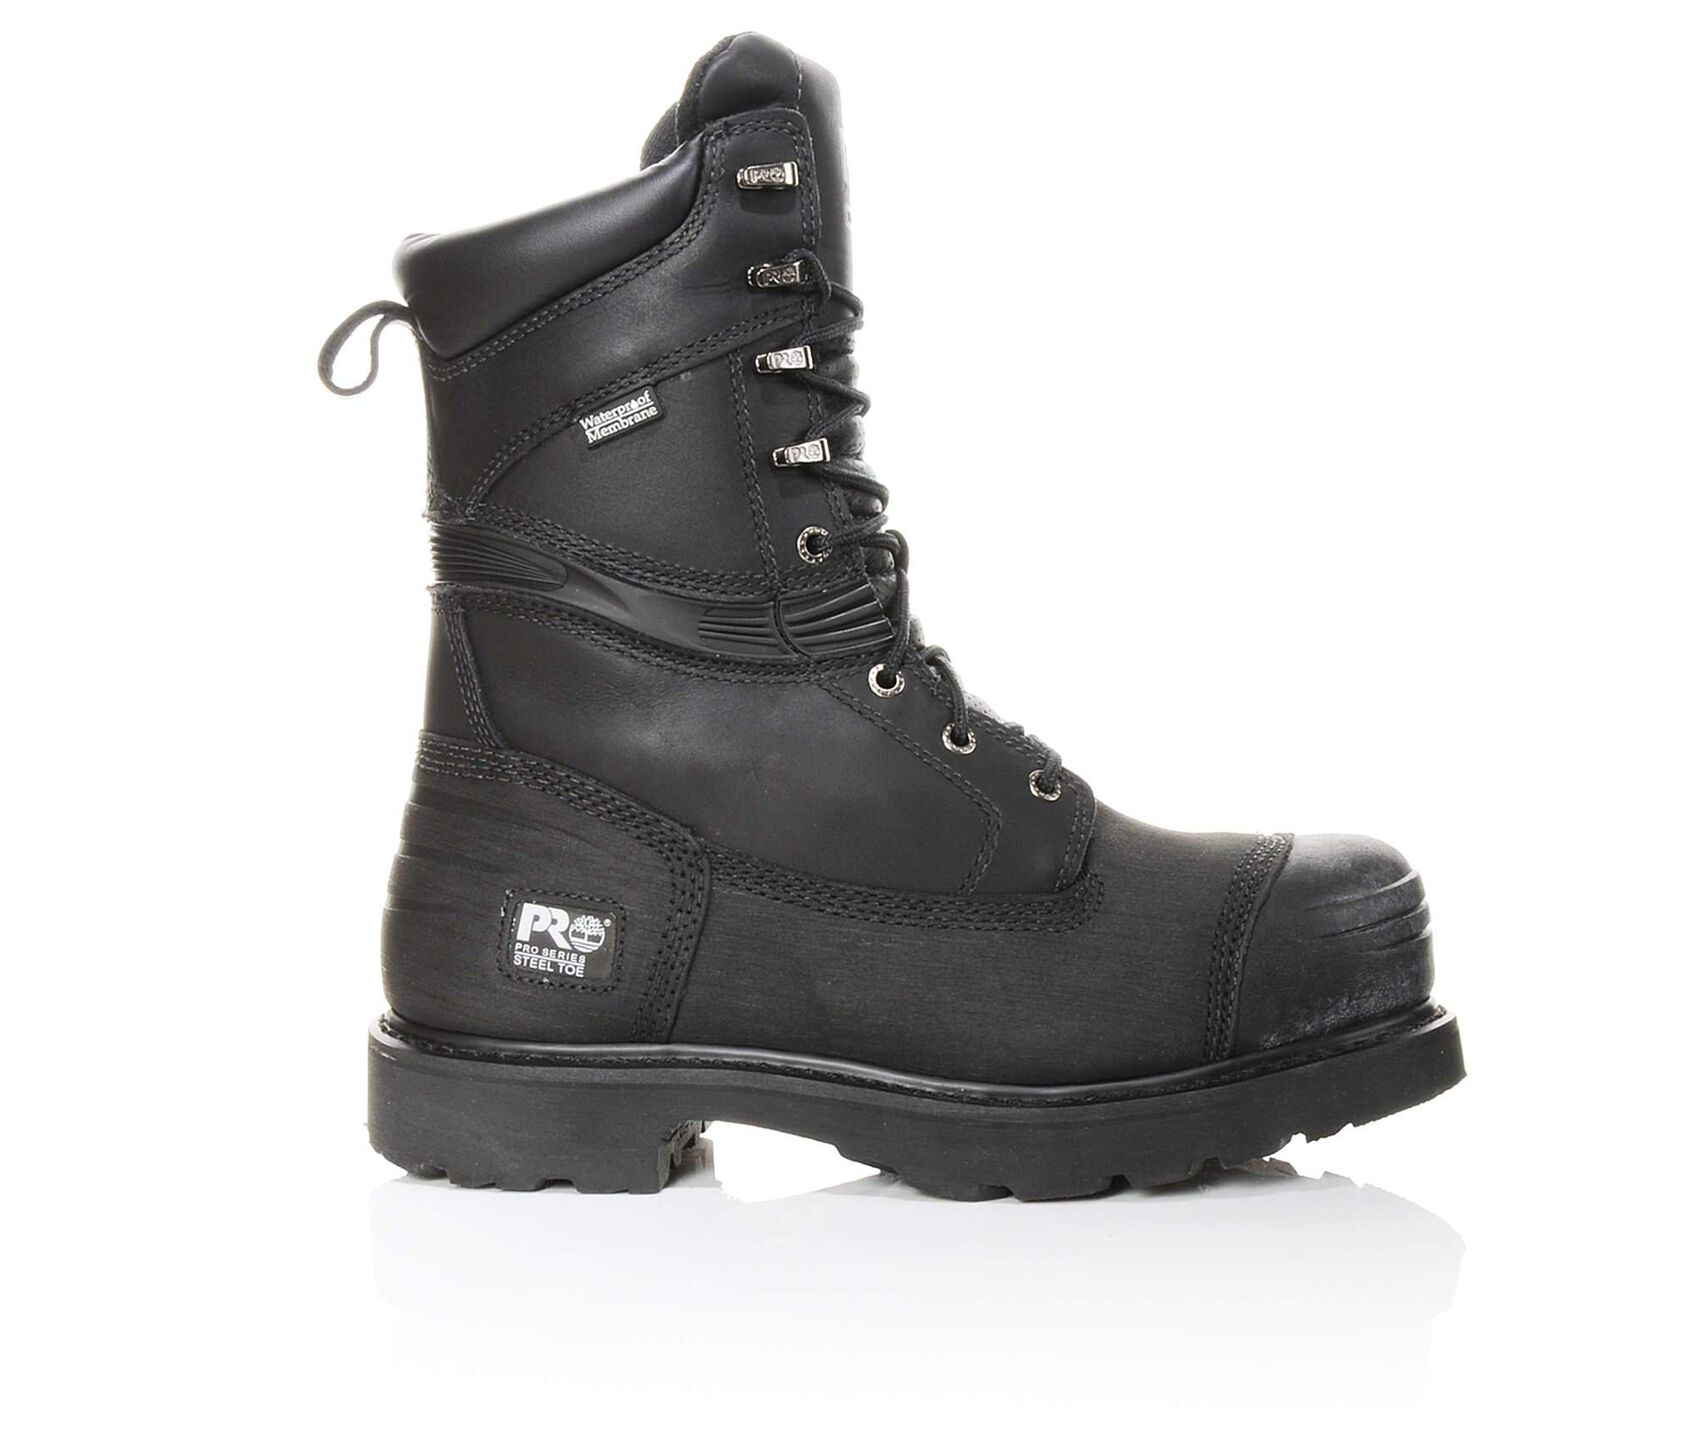 7e95022127d4 Men s Timberland Pro Gravel Pit 10 Inch Steel Toe 53531 Work Boots ...